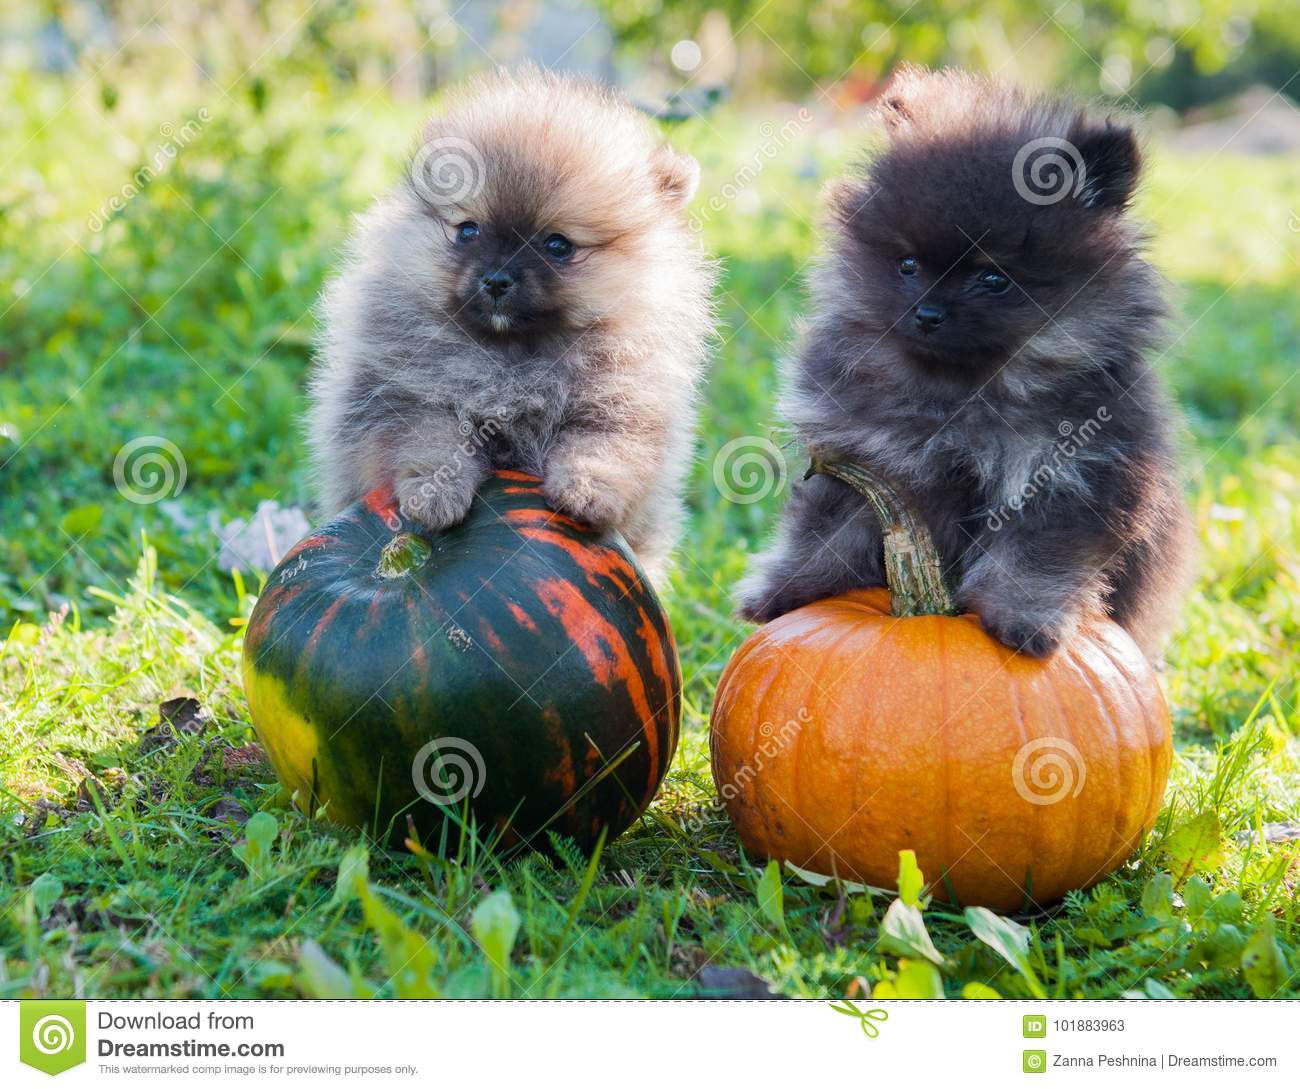 pomeranian dogs and pumpkin, halloween stock image - image of cream